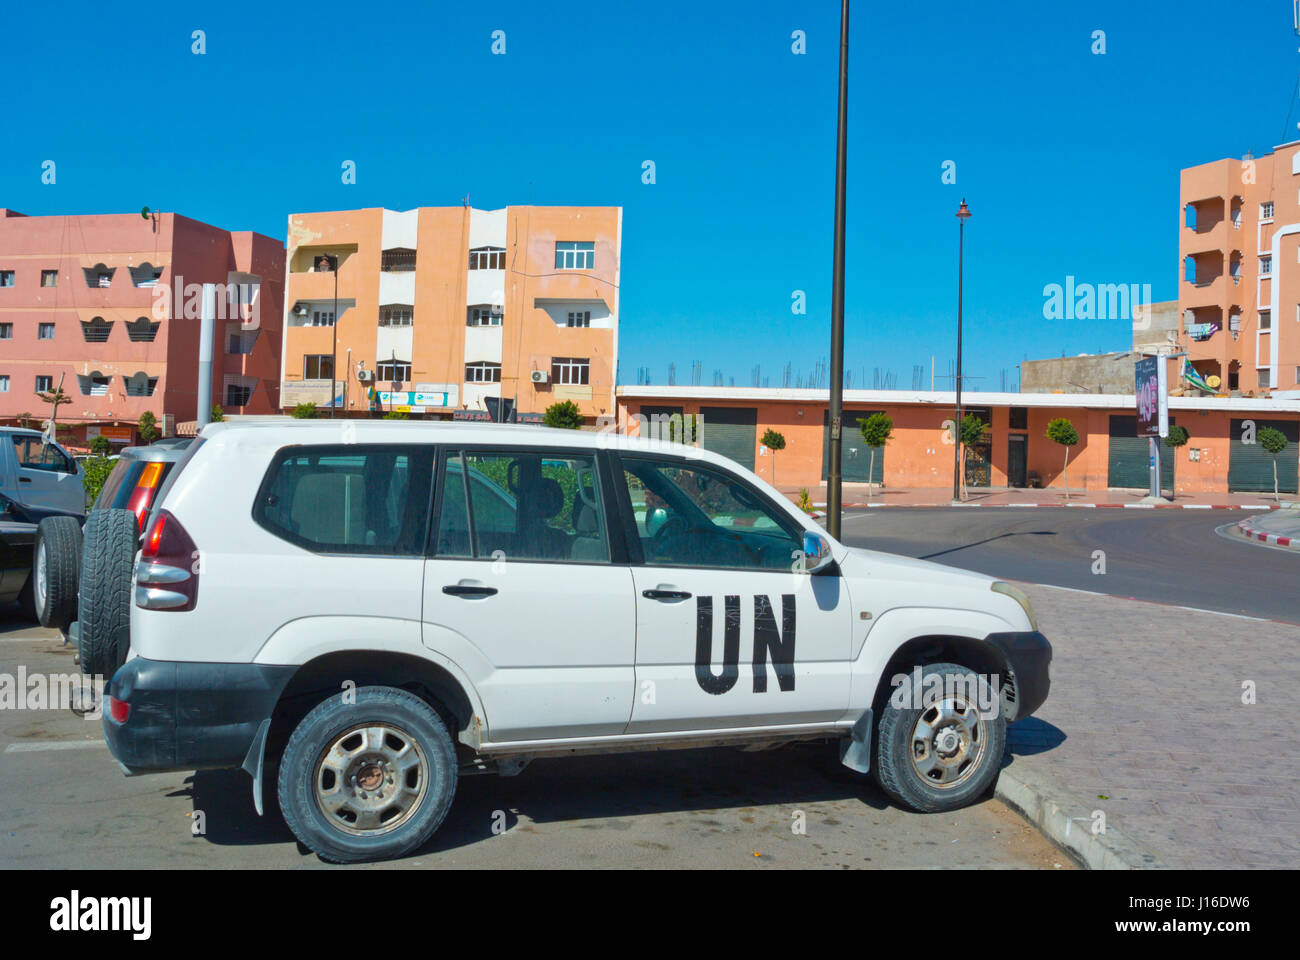 United Nations vehicle, Laayoune, El Aioun, Western Sahara, administered by Morocco - Stock Image